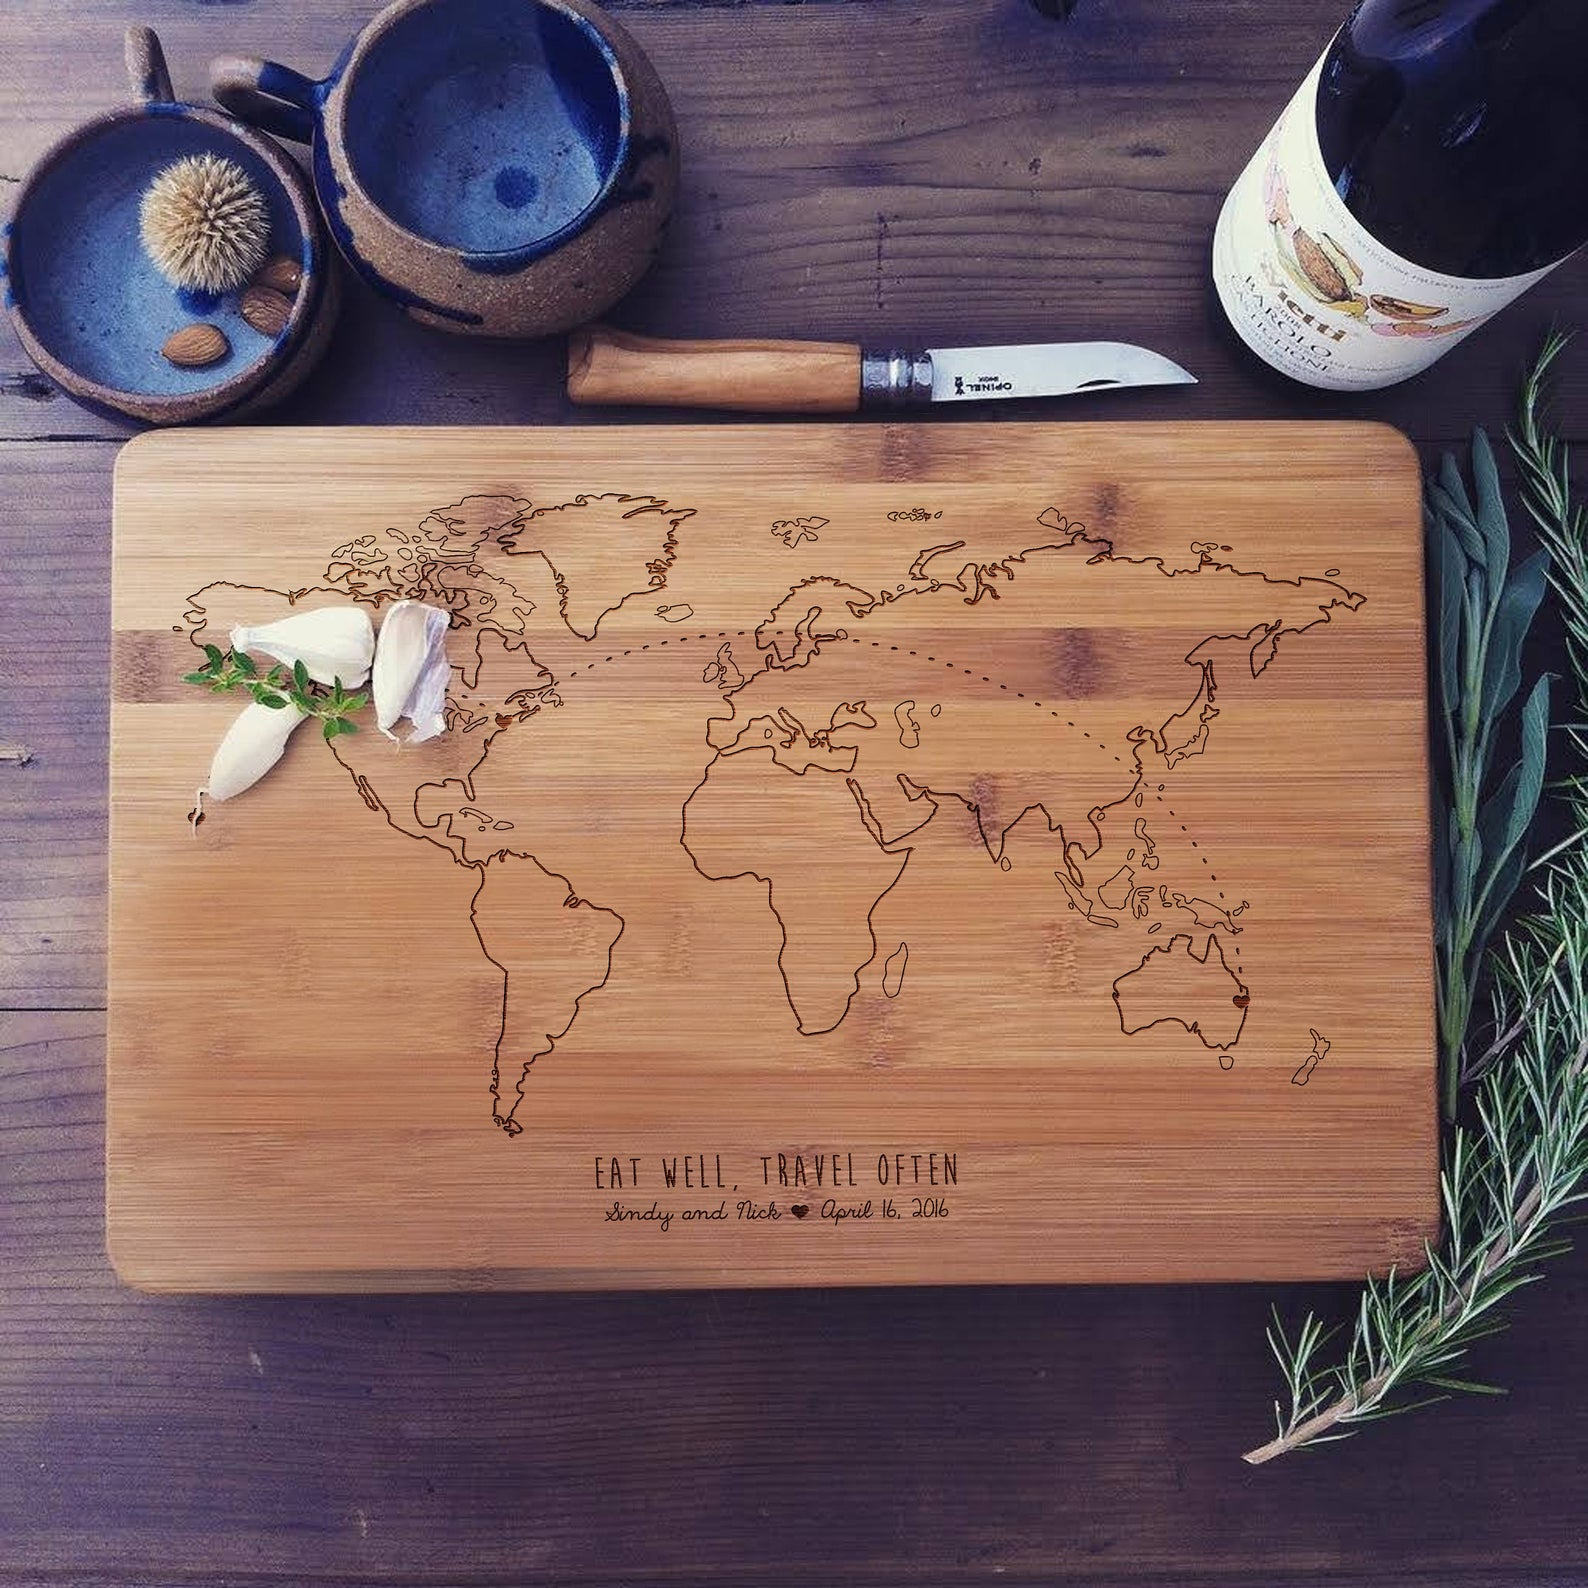 cutting board with world map on it